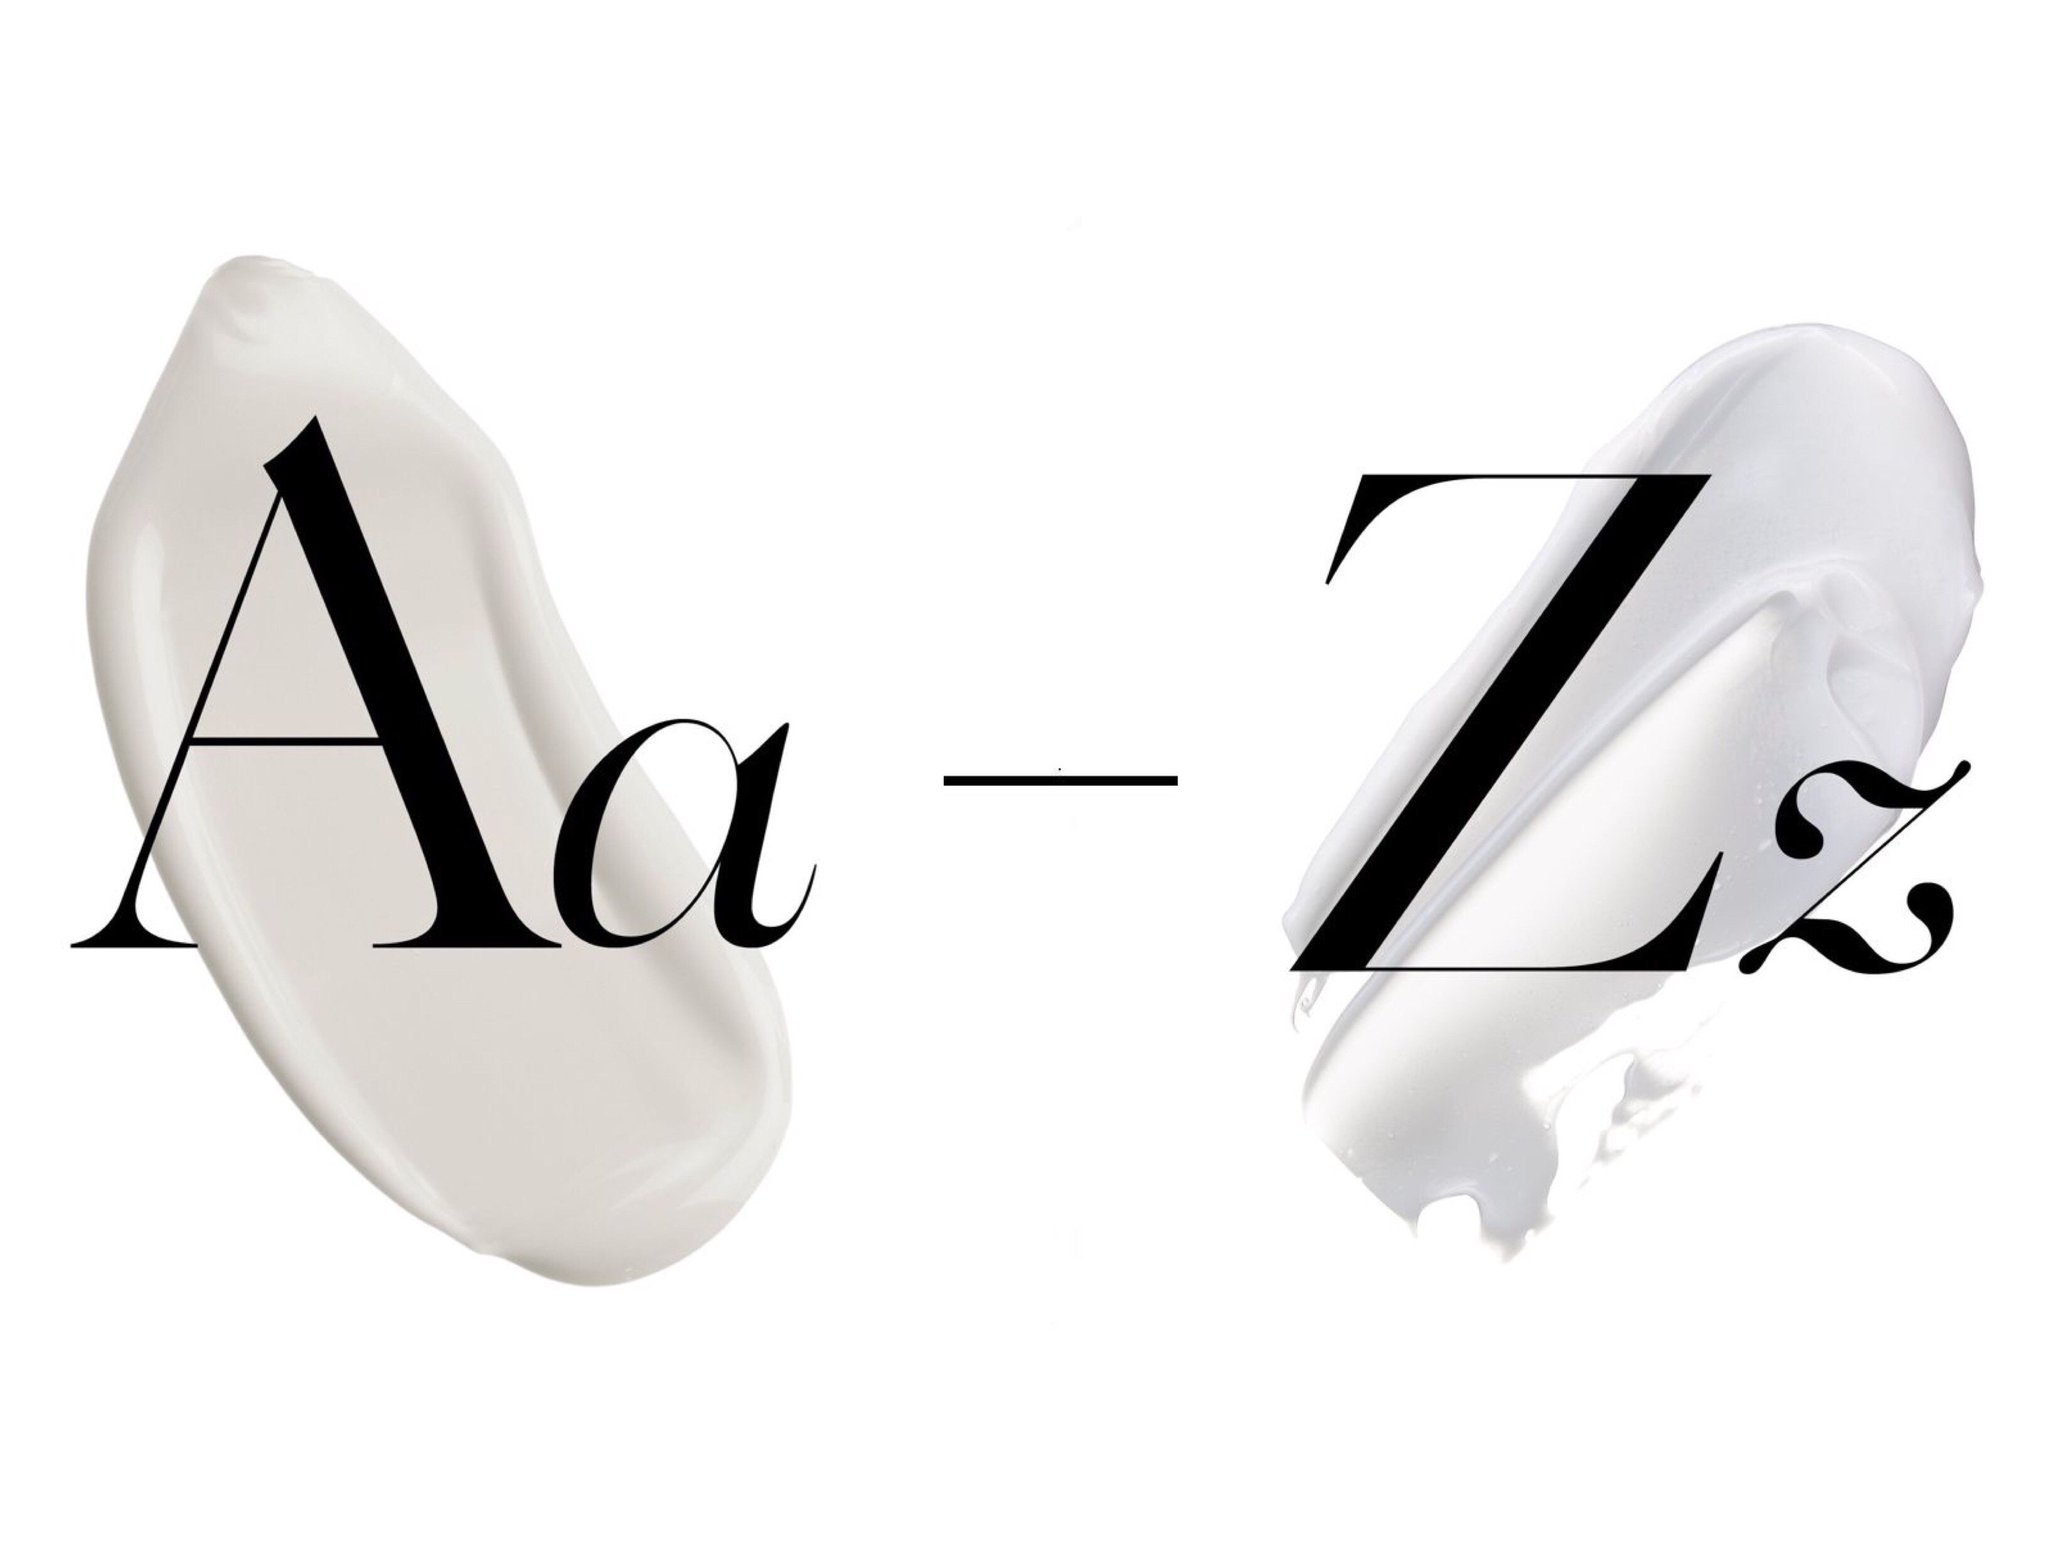 Are you a beauty geek? Learn your ingredients ABC with the Vogue Skincare Alphabet: https://t.co/zvCfY6Q06T https://t.co/cDA6bj1MvQ